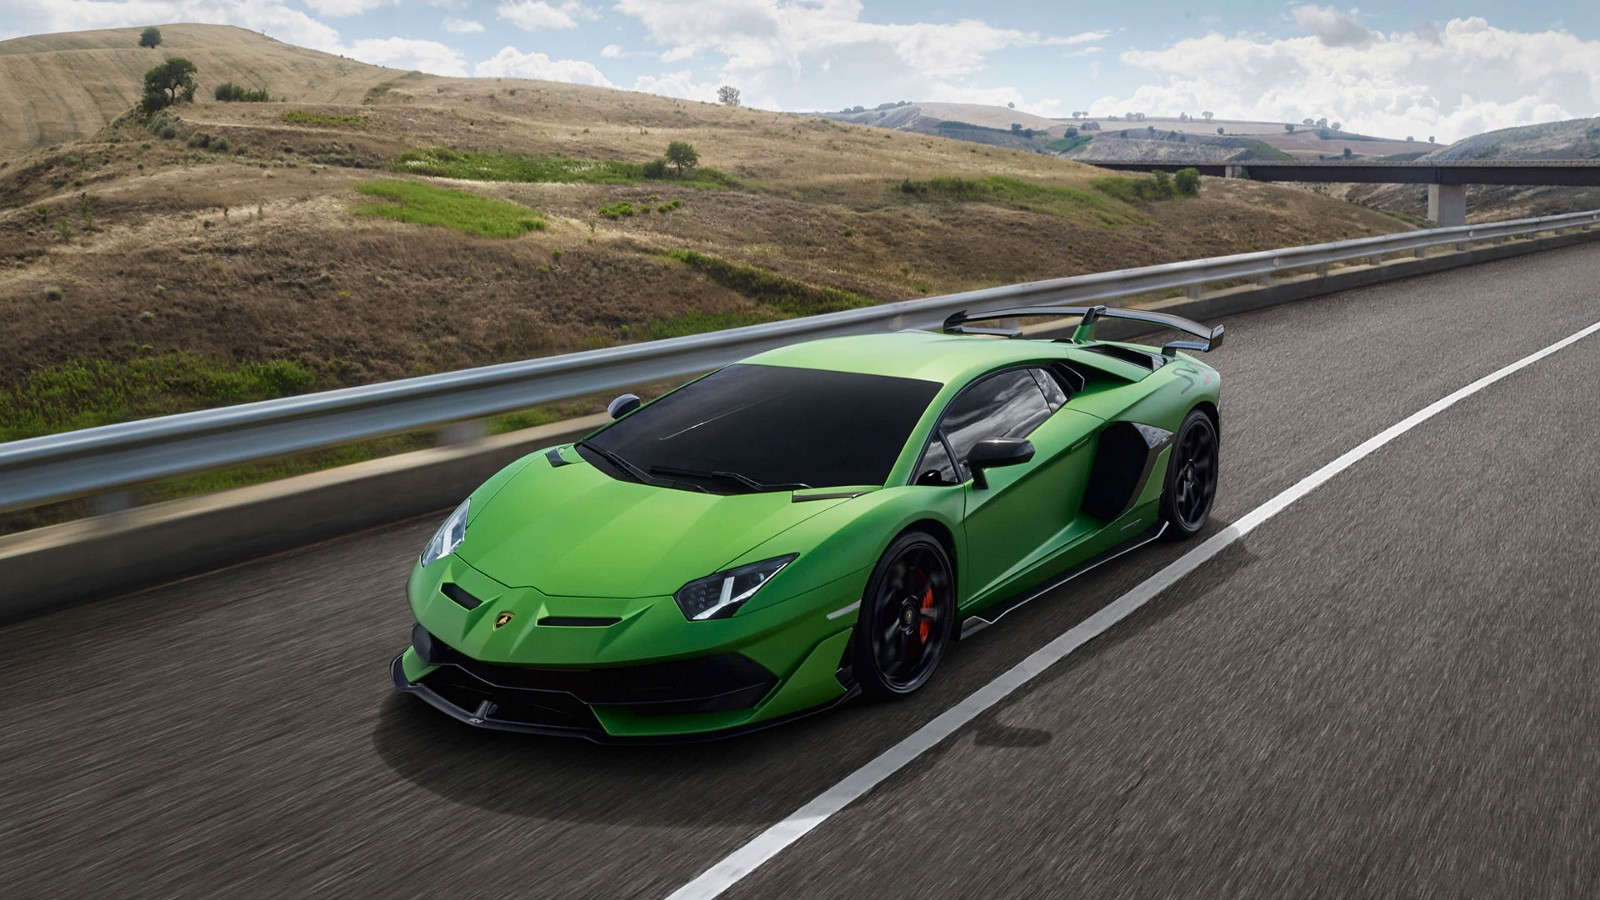 5 Things You Did Not Know About The Lamborghini Aventador Svj